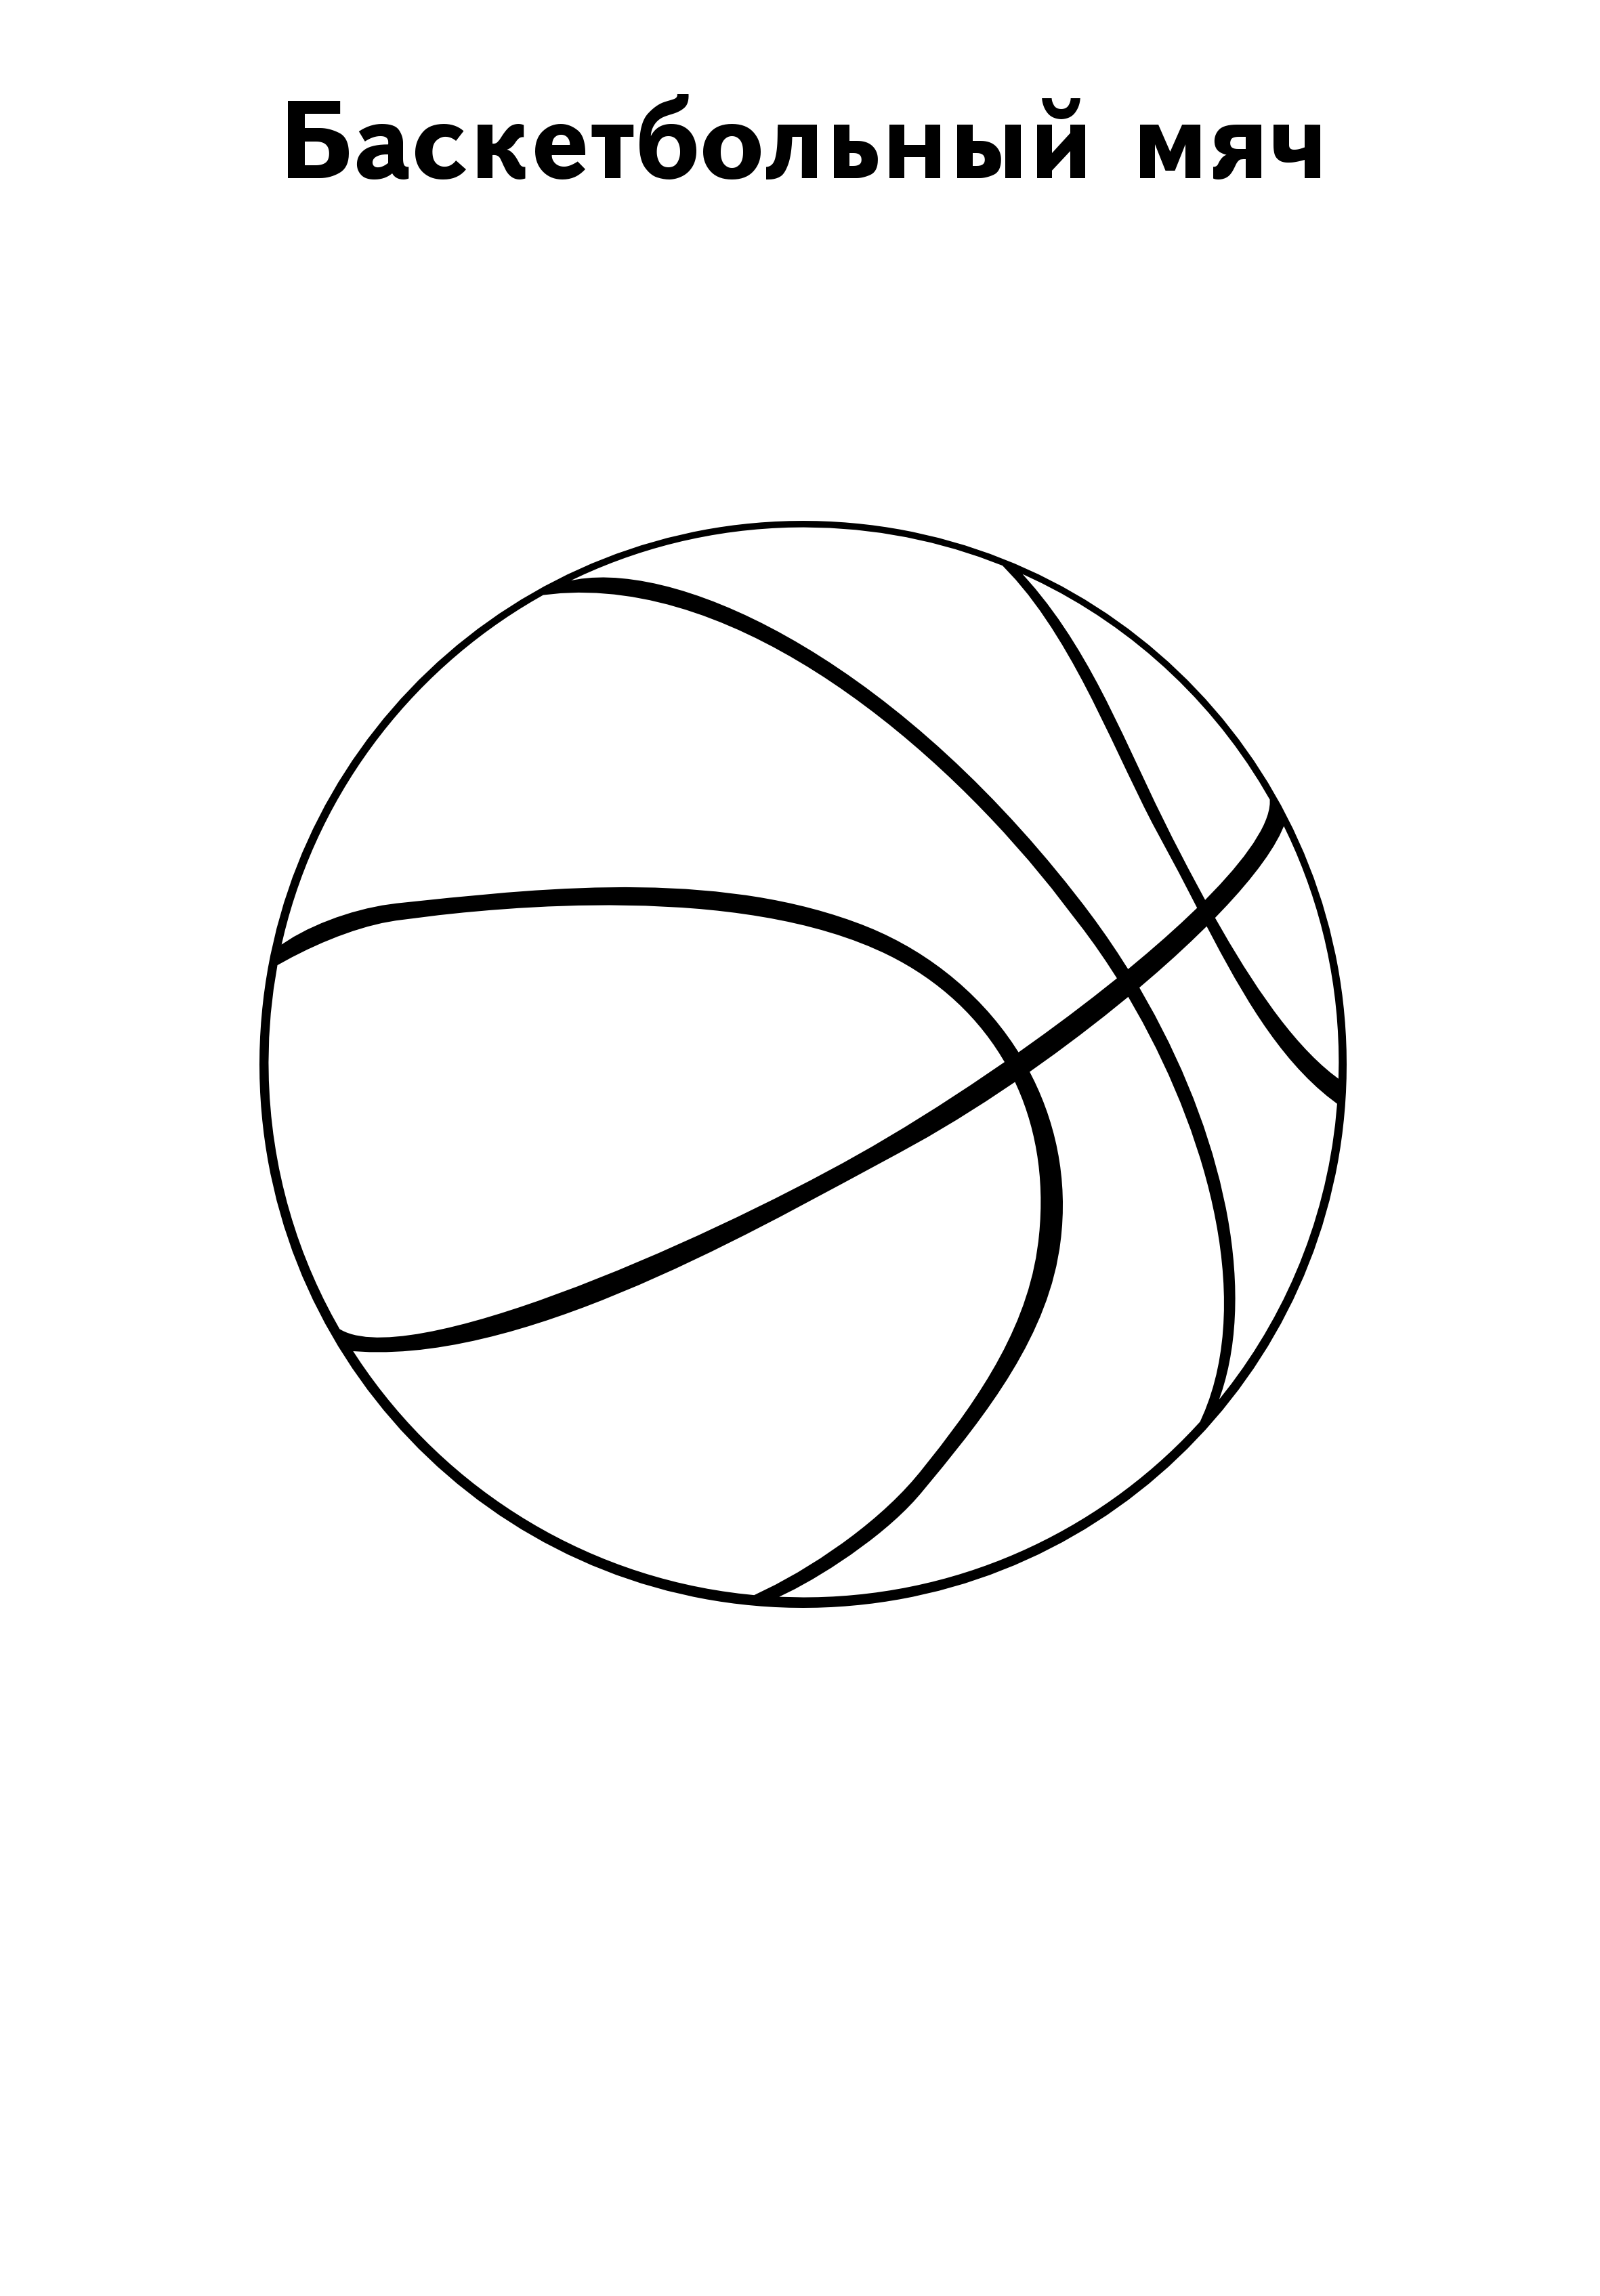 ball coloring pages ball coloring page free printable coloring pages ball pages coloring